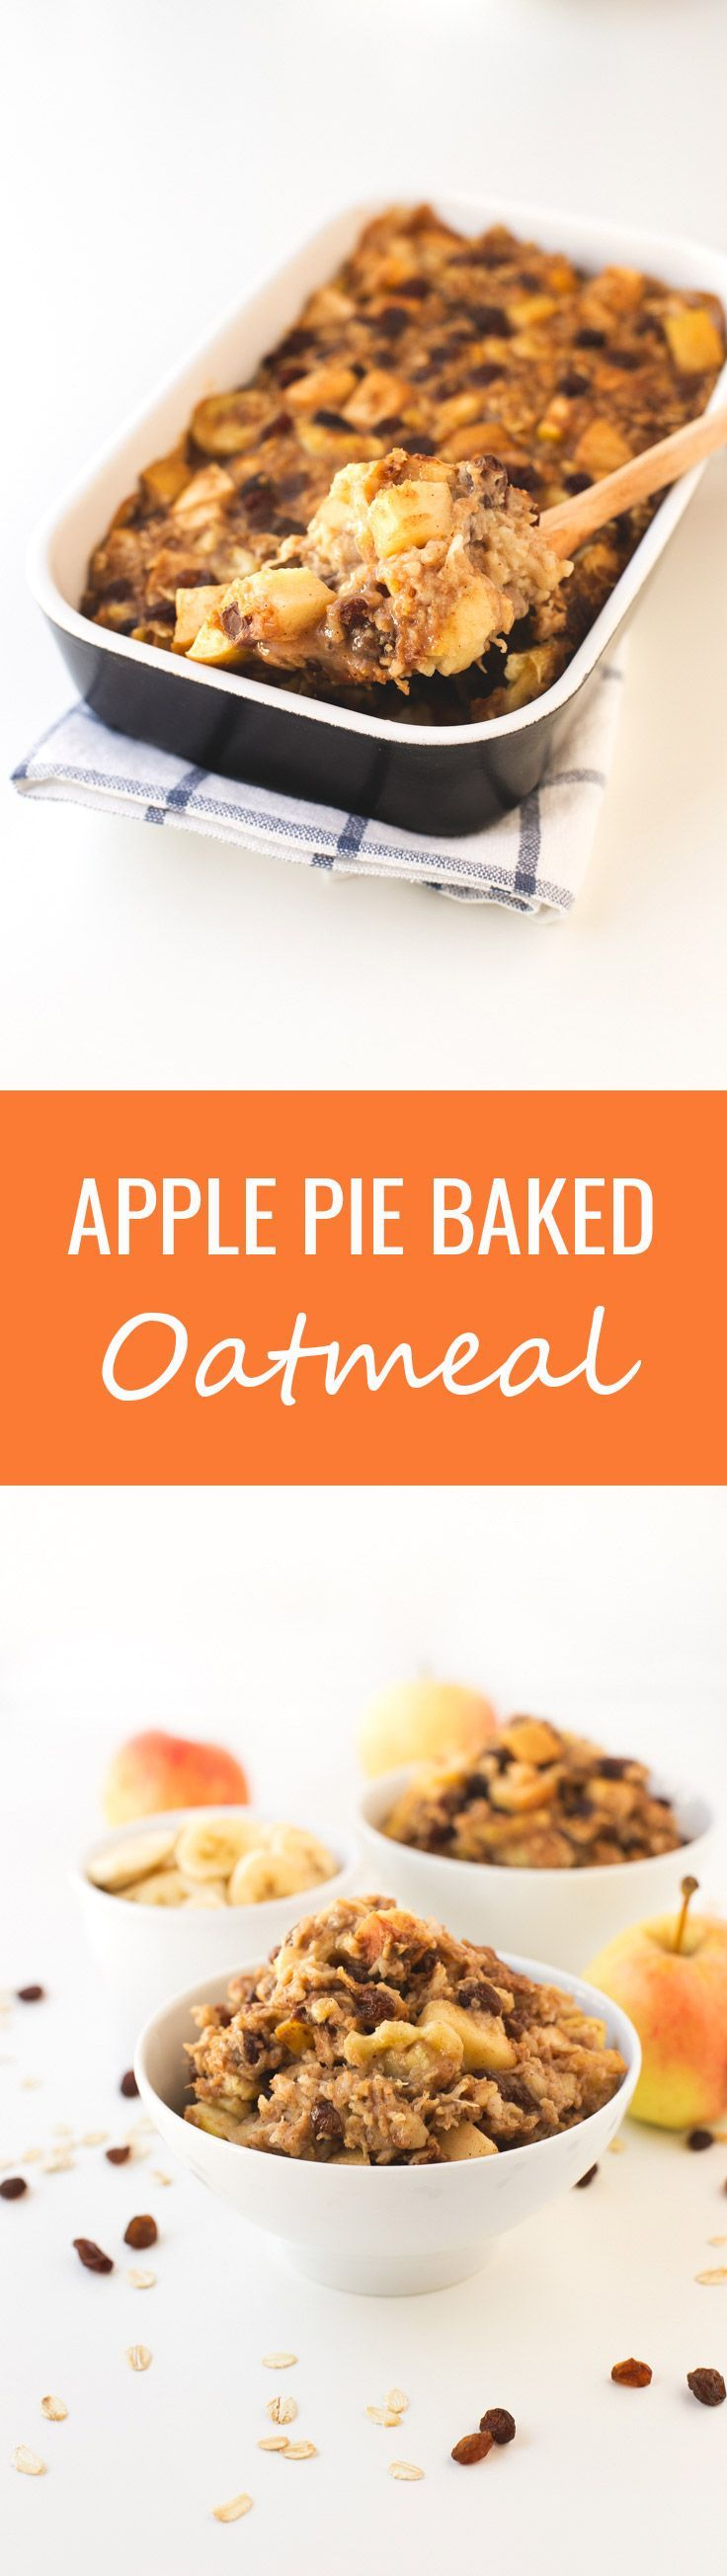 (Vegan and GF) Apple Pie Baked Oatmeal - This apple pie baked oatmeal is so easy to make, you just need to mix all the ingredients in a bowl, place them in a baking dish and bake until golden brown.